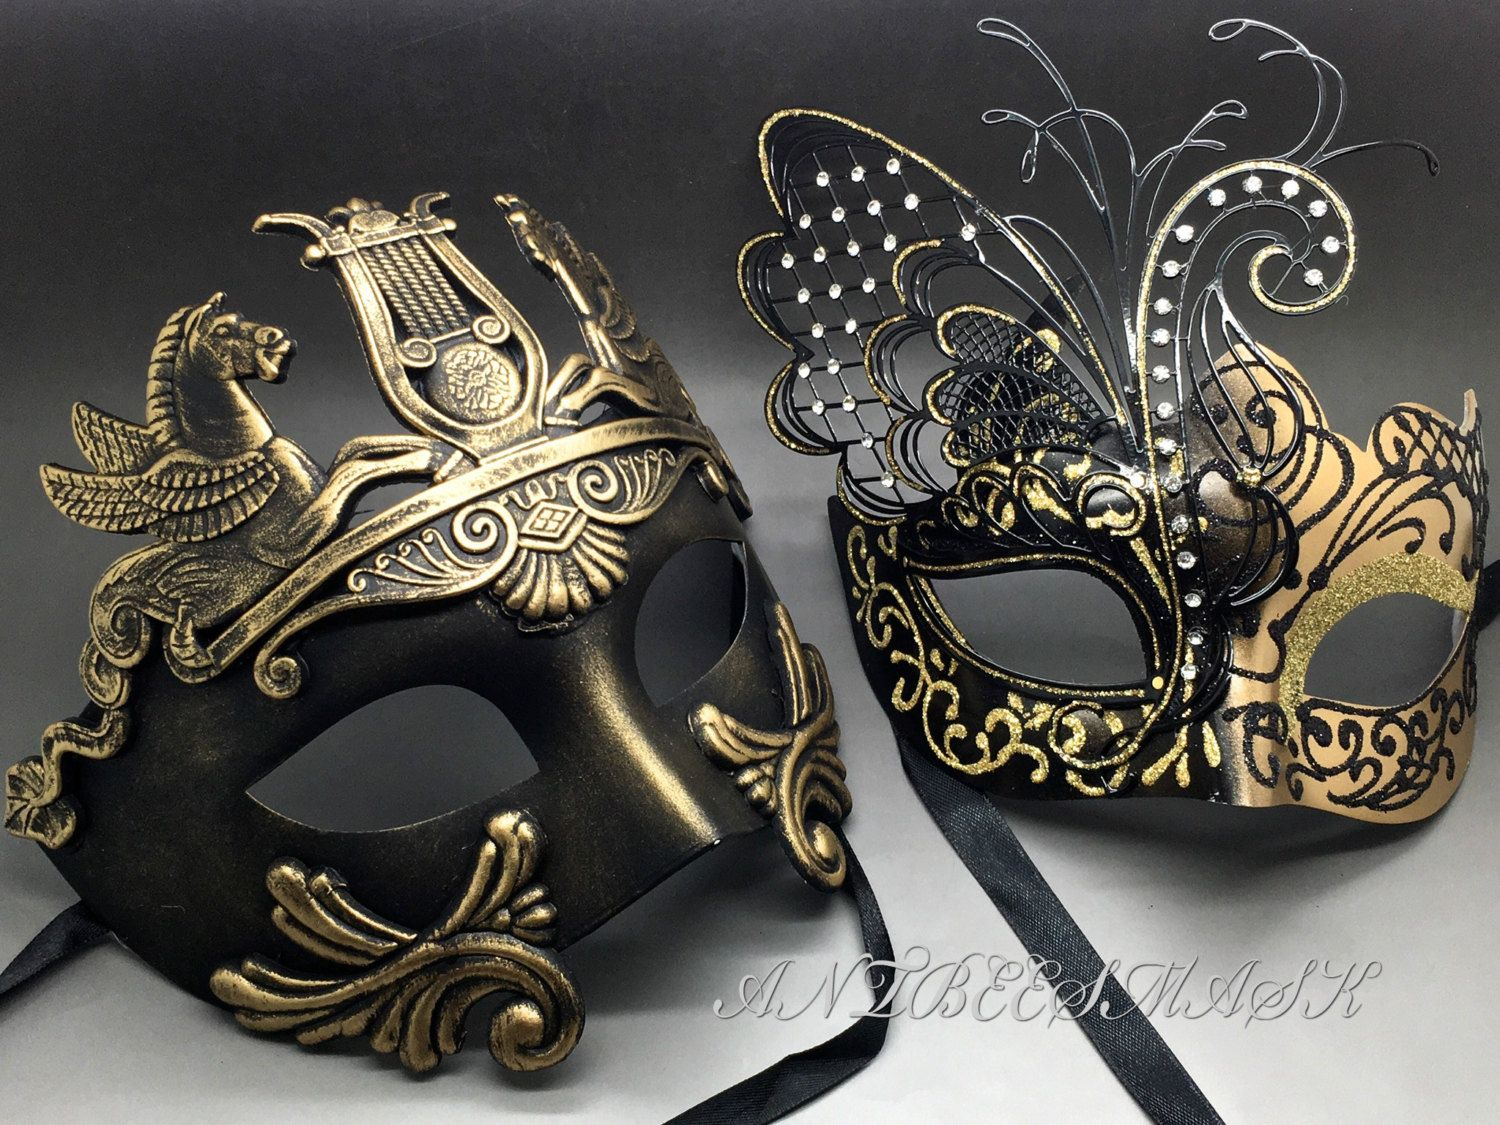 ec15ec666ae8 Couple Gold & Black Laser Cut Metal Butterfly and Rome Warrior Venetian  Masquerade Party Mask